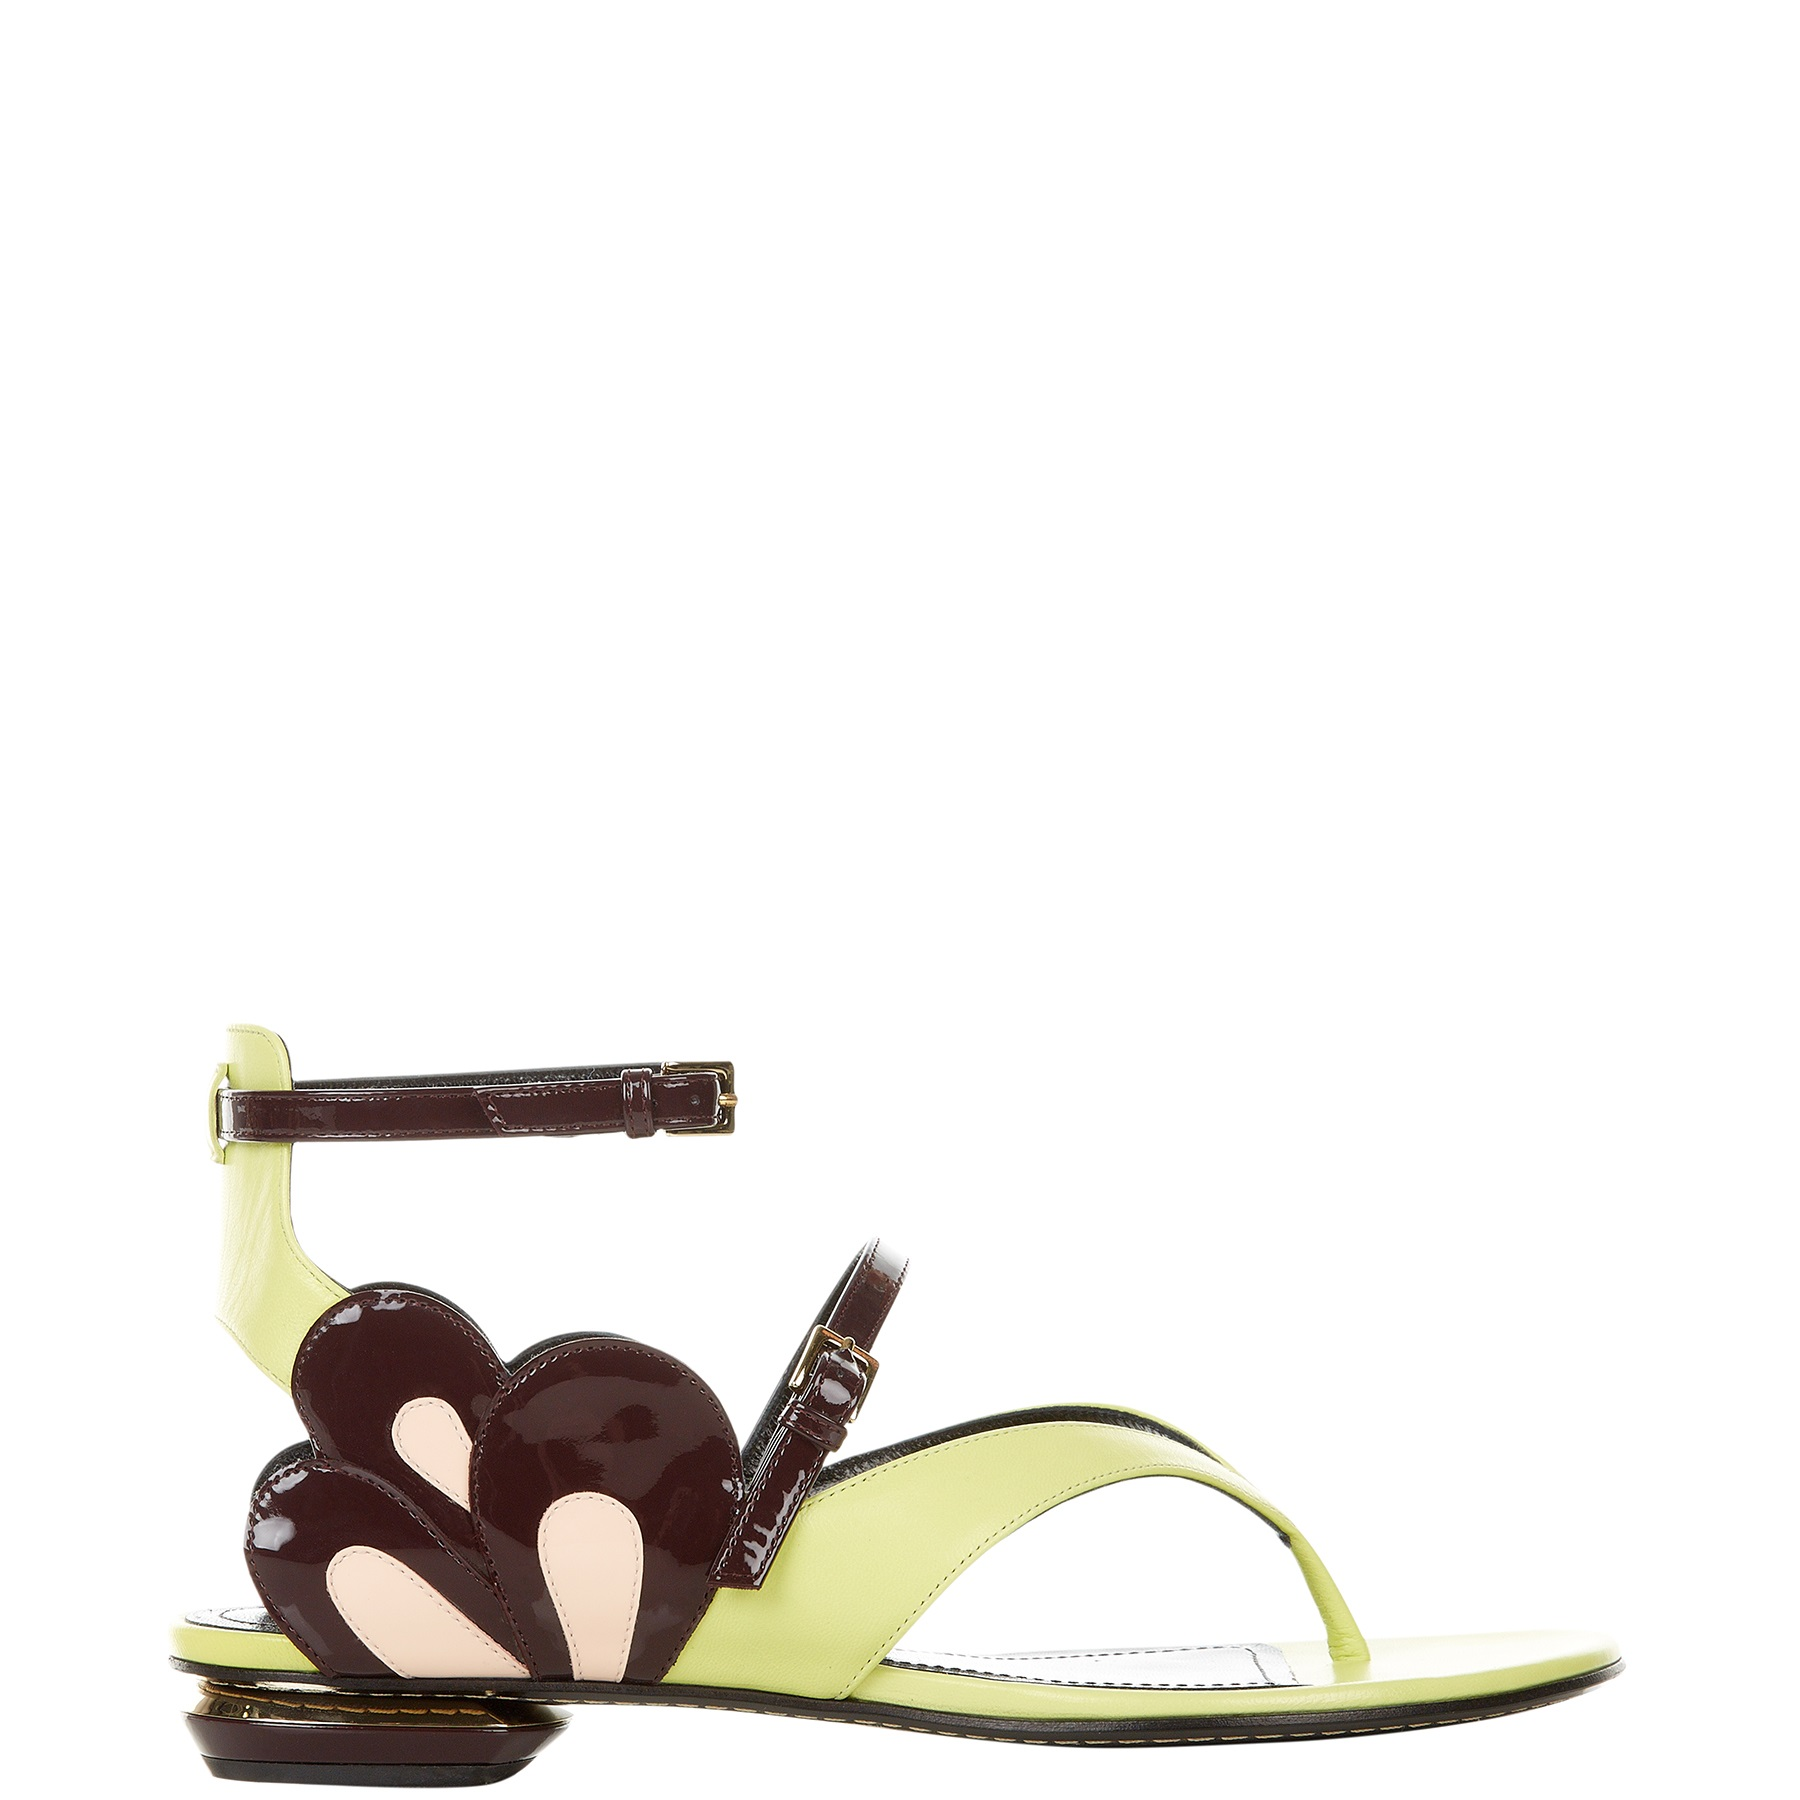 Nicholas-Kirkwood-Spring-Summer-2015-Bow-Sandals.jpeg